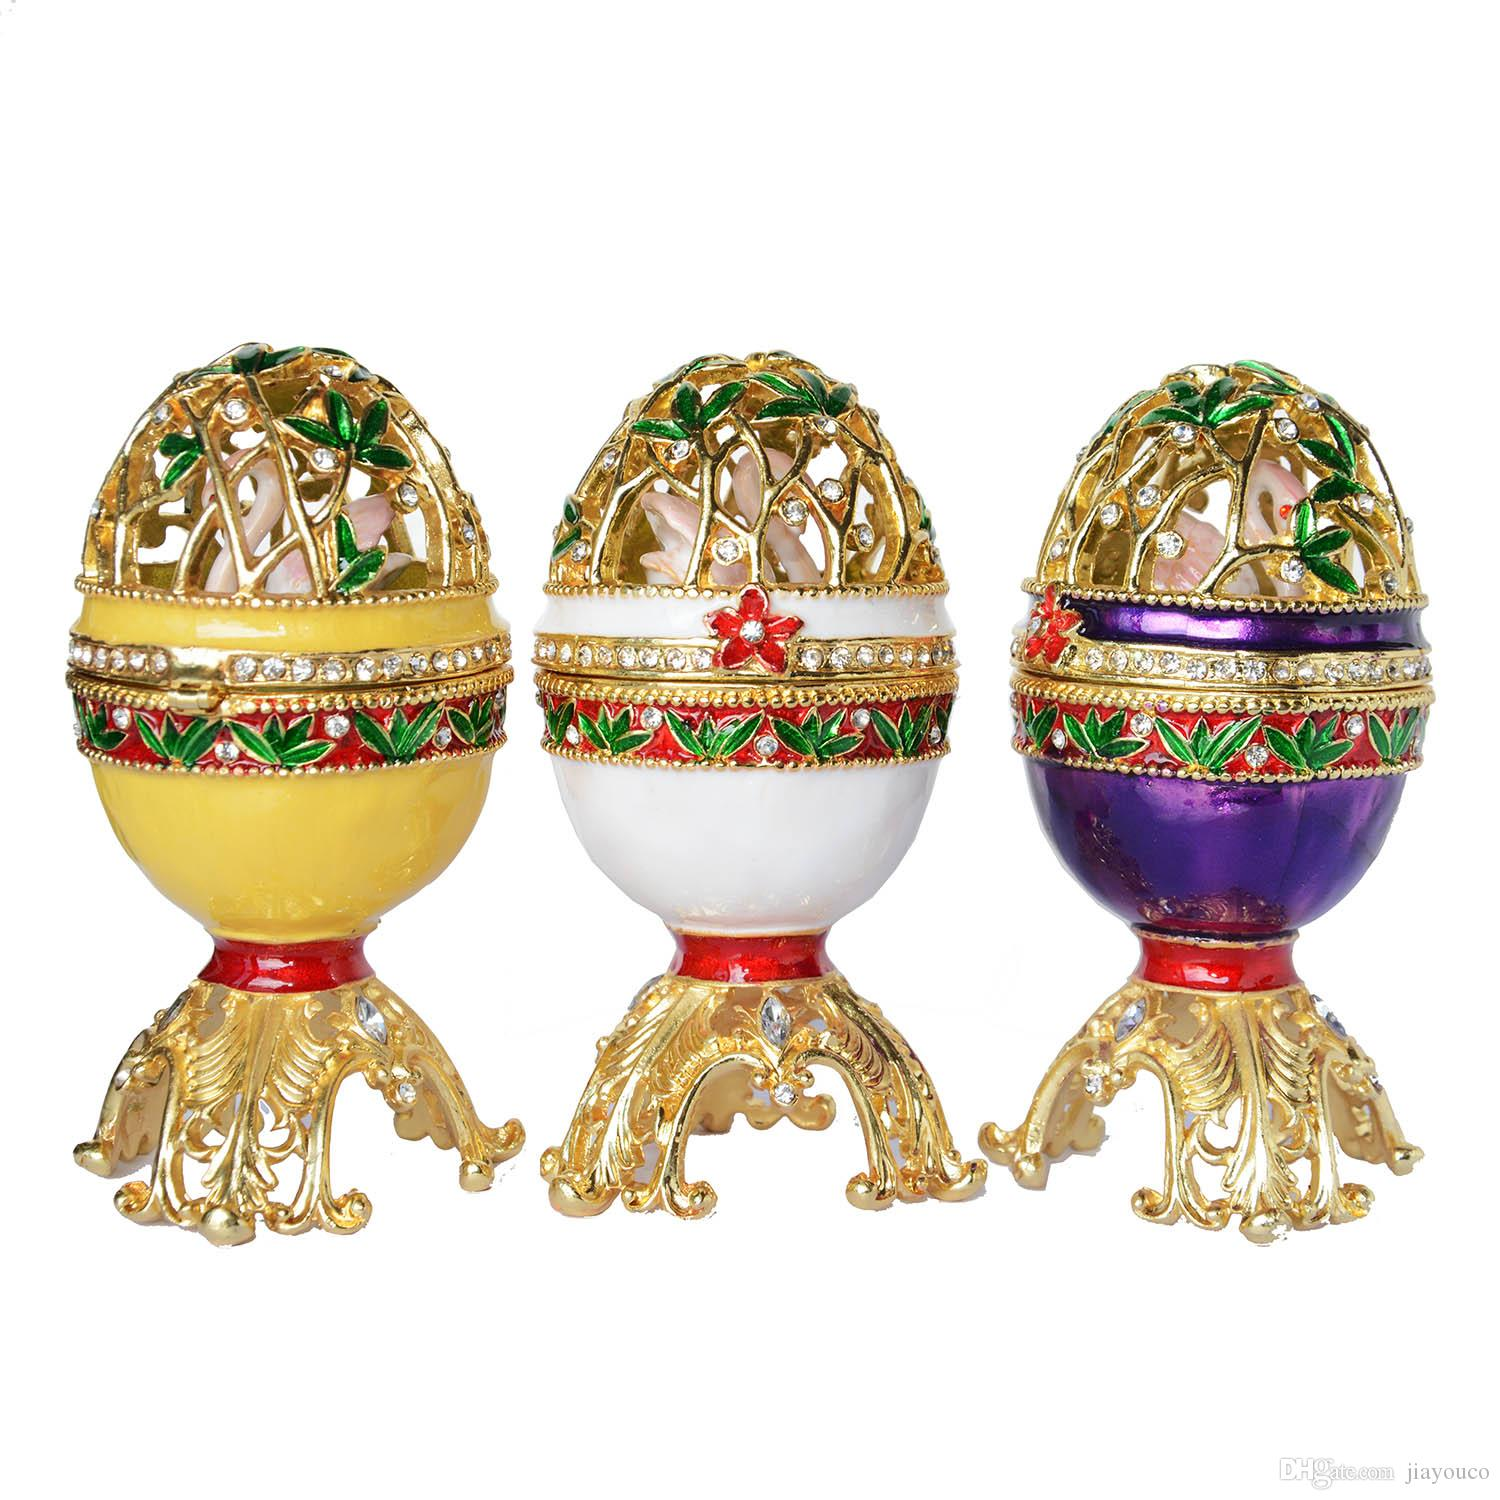 2018 russian craft faberge style easter egg w swan bejeweled trinket 2018 russian craft faberge style easter egg w swan bejeweled trinket box metal jewelry box home decor sculpture christmas gifts from jiayouco negle Gallery